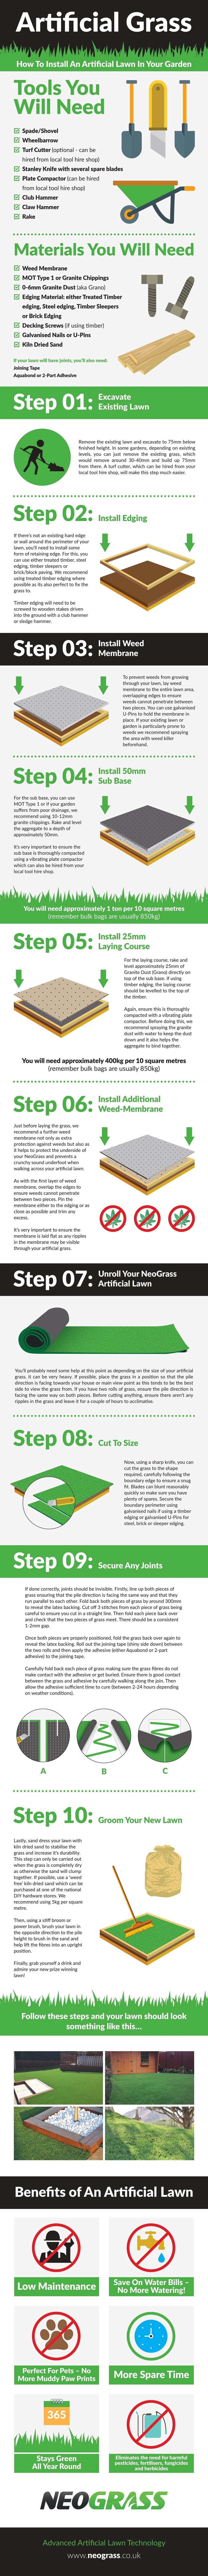 How To Install Artificial Grass Infographic